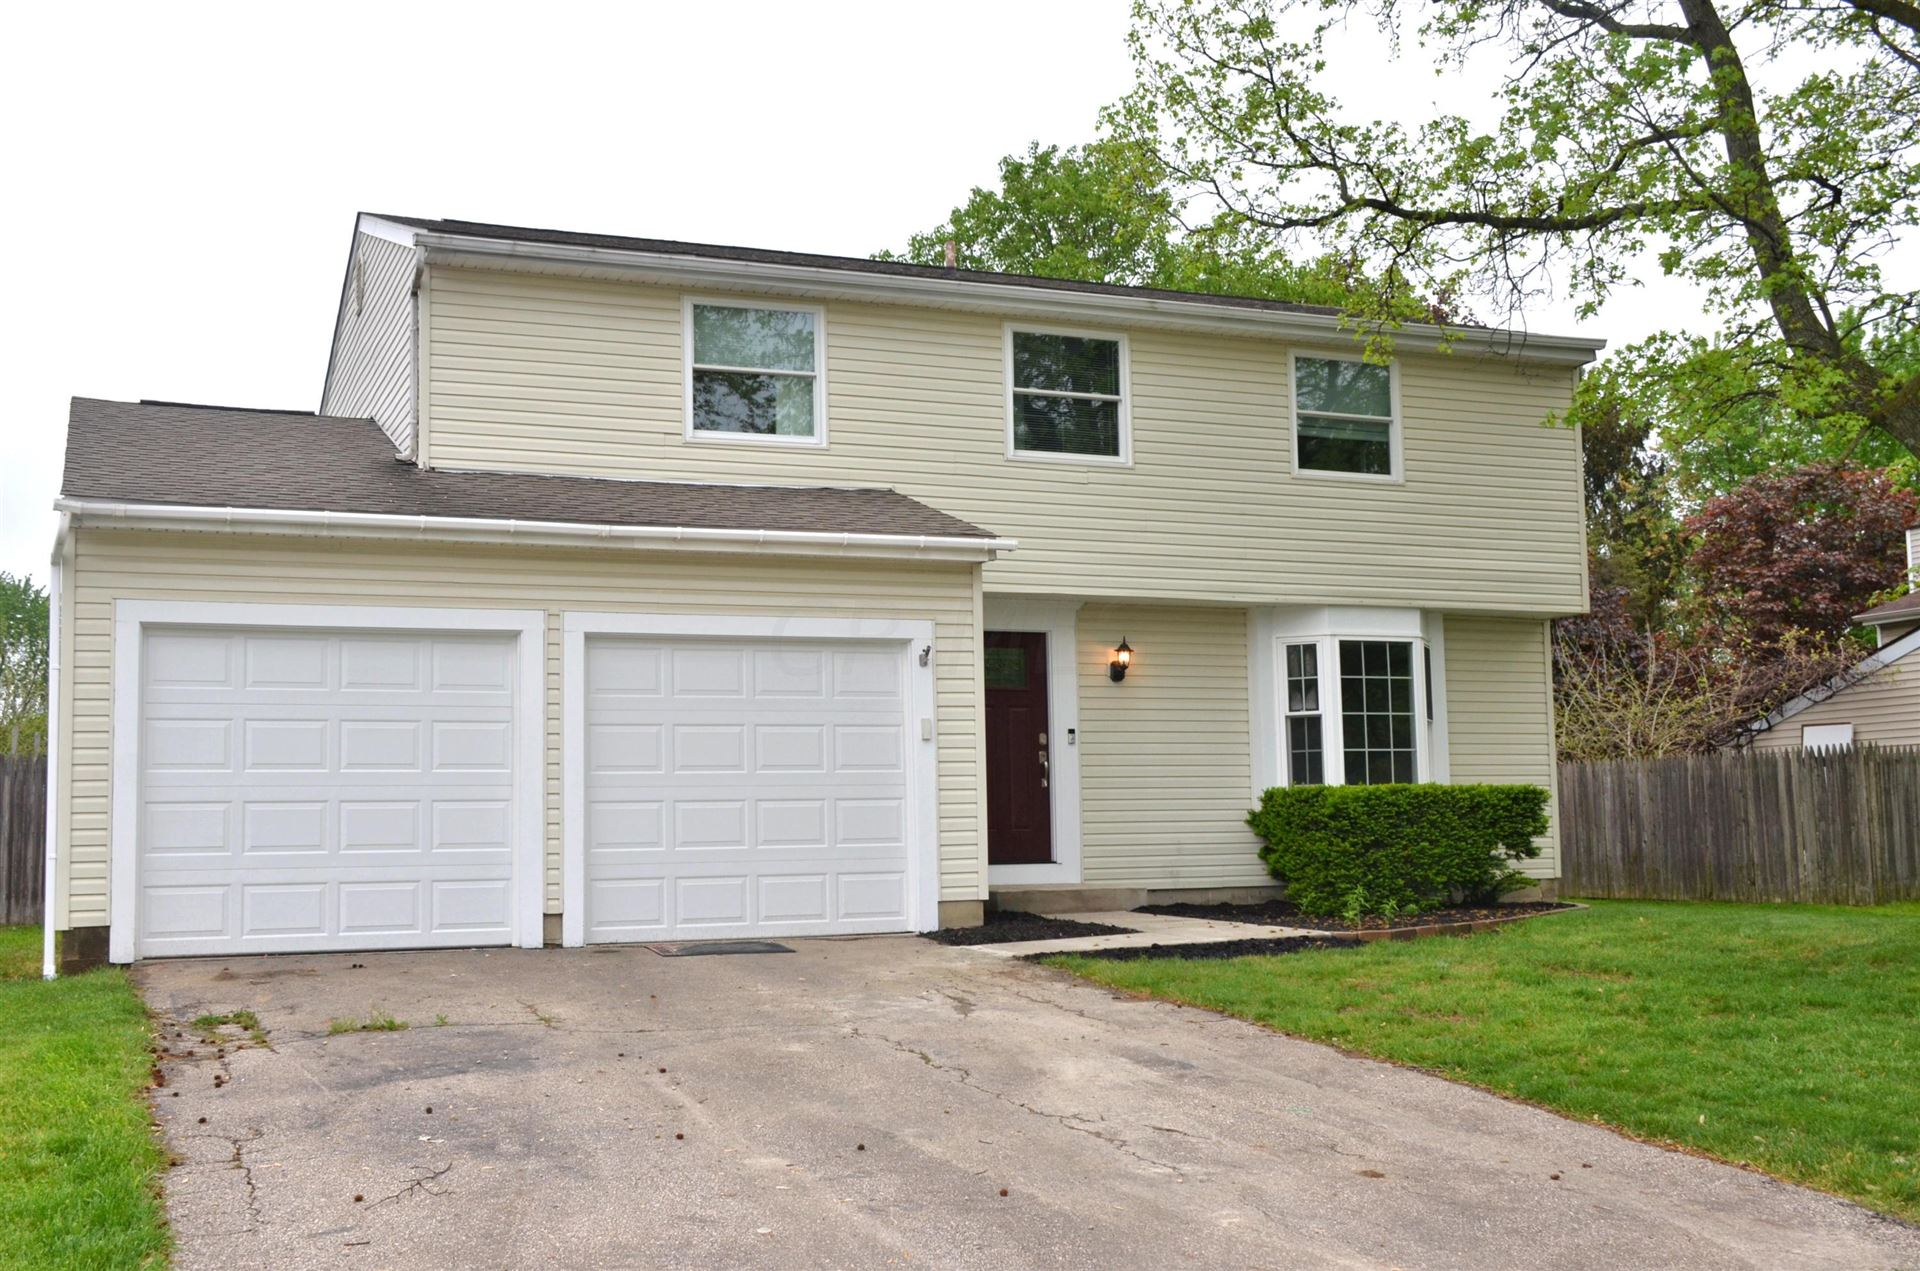 Photo of 8819 Seabright Drive, Powell, OH 43065 (MLS # 221014675)